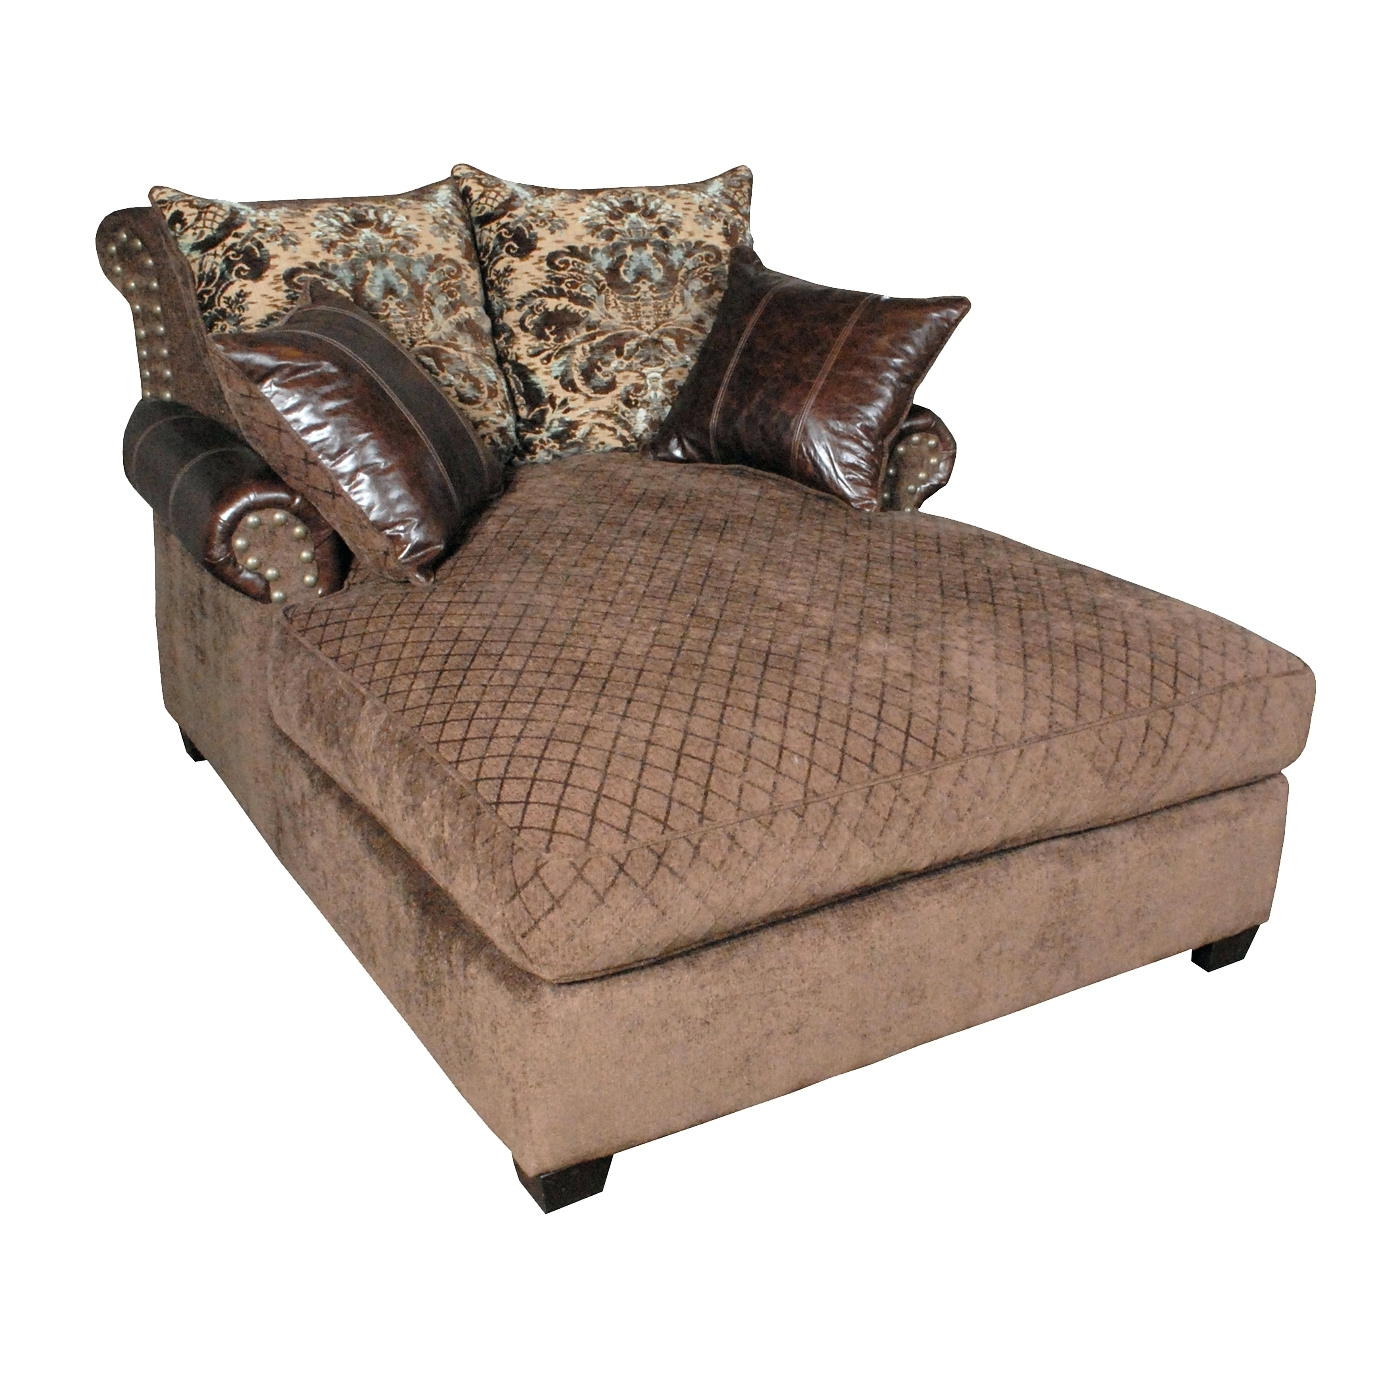 Well Known 2 Person Chaise Lounges Within Ideas Collection Two Person Chaise About 2 Person Chaise Lounge (View 5 of 15)